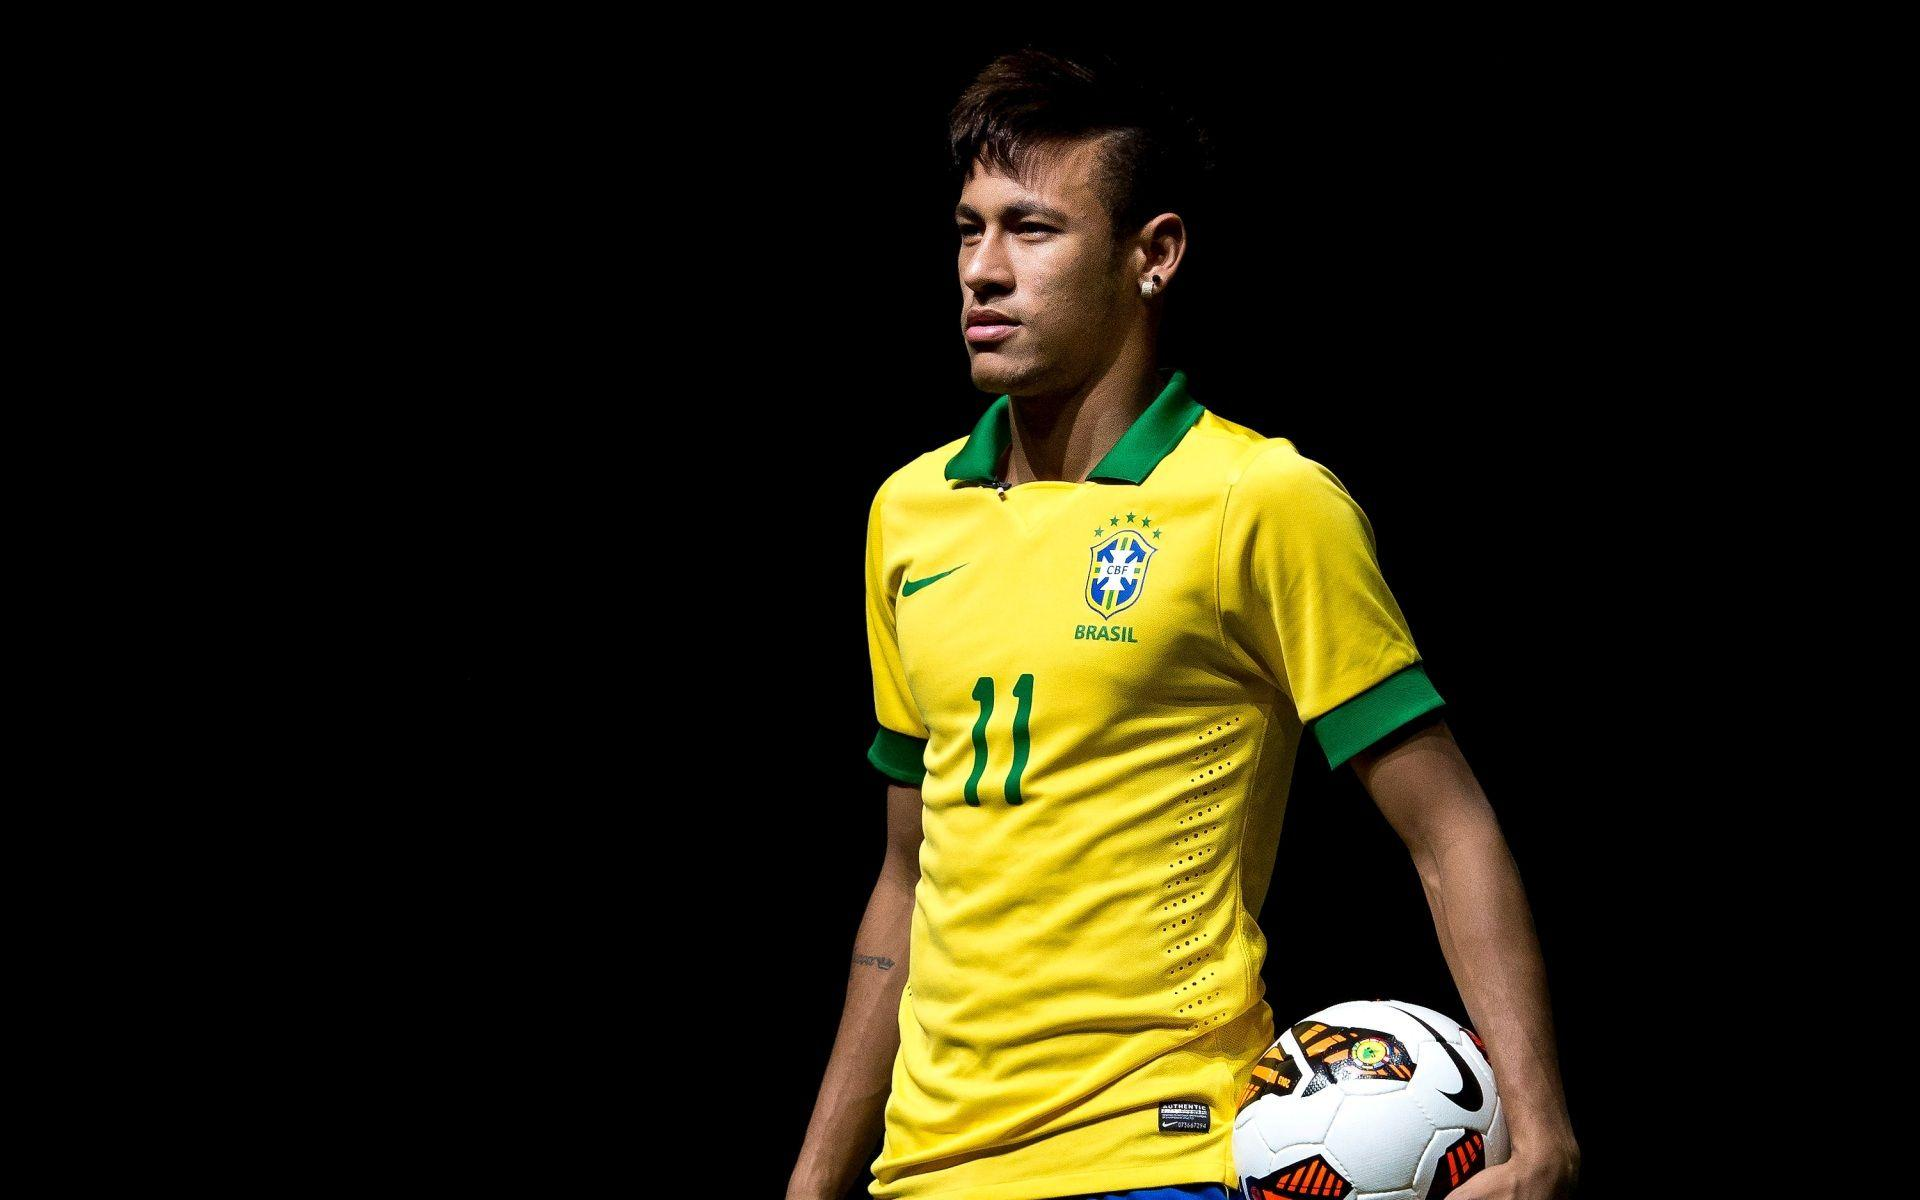 Cool Neymar Wallpapers HD | PixelsTalk.Net